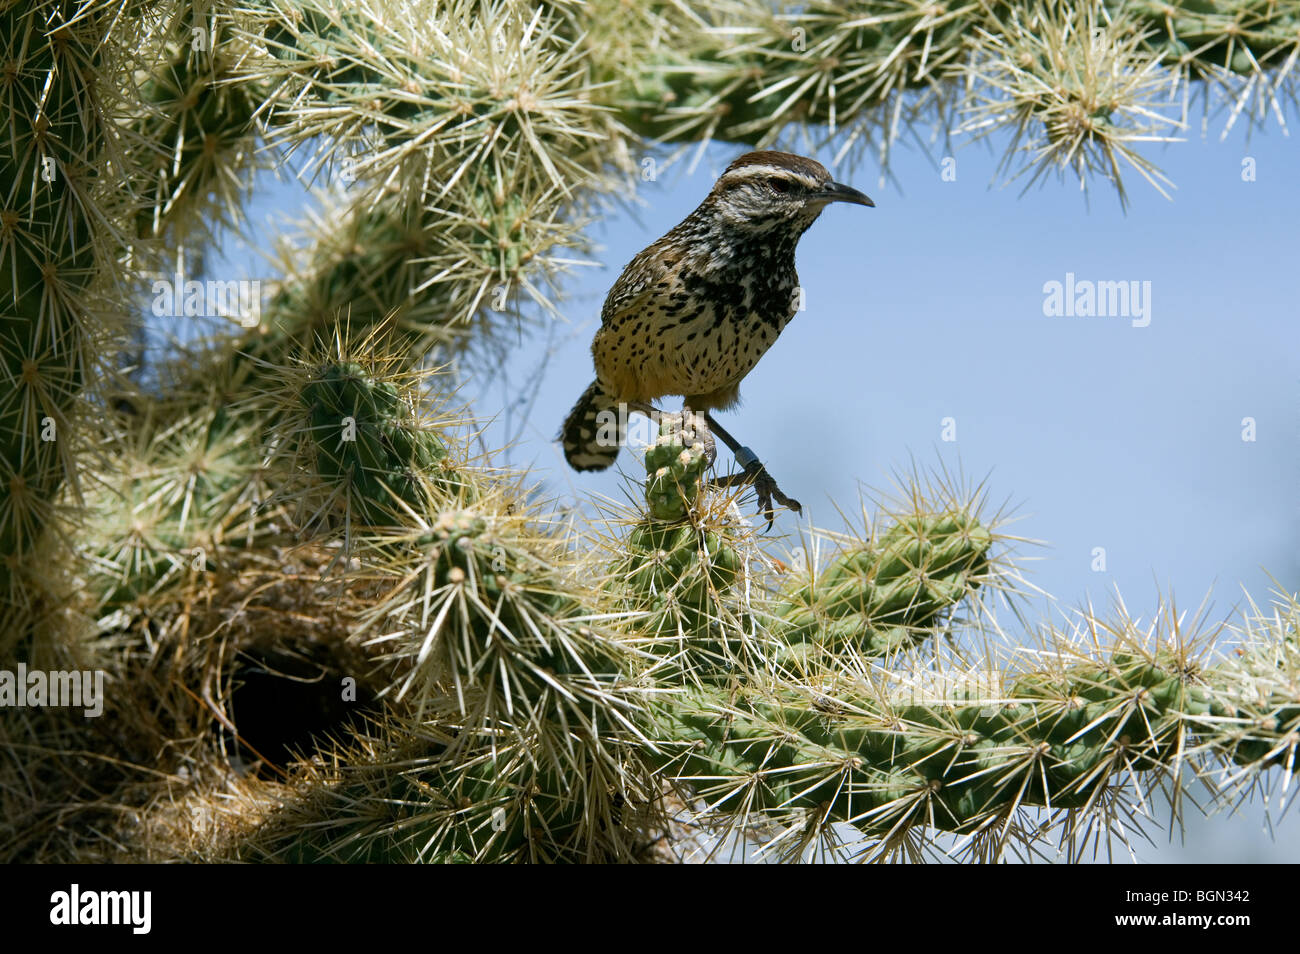 Cactus wren (Campylorhynchus brunneicapillus) perched on Chain fruit / Jumping cholla, Sonora desert, Arizona, USA - Stock Image